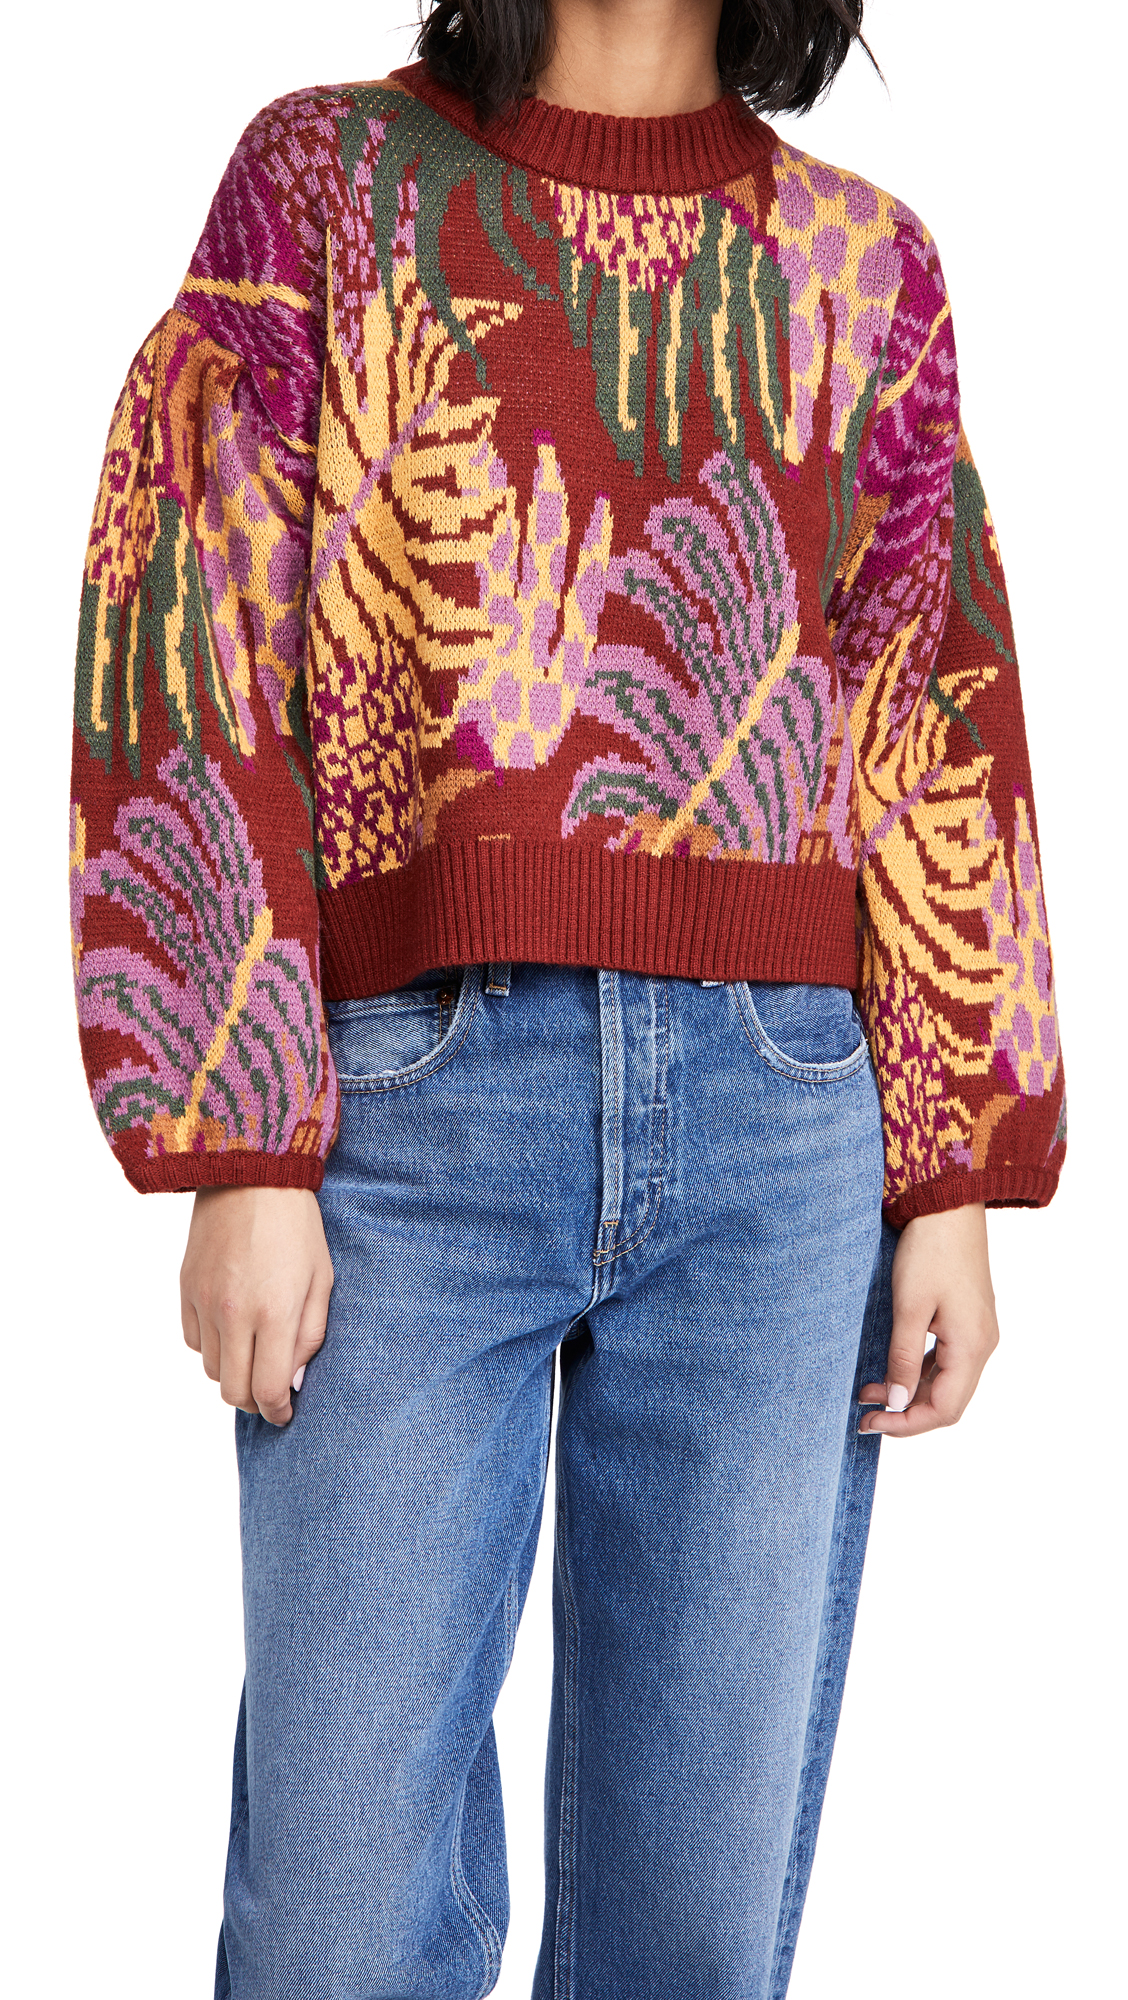 FARM Rio Graphic Jungle Sweater